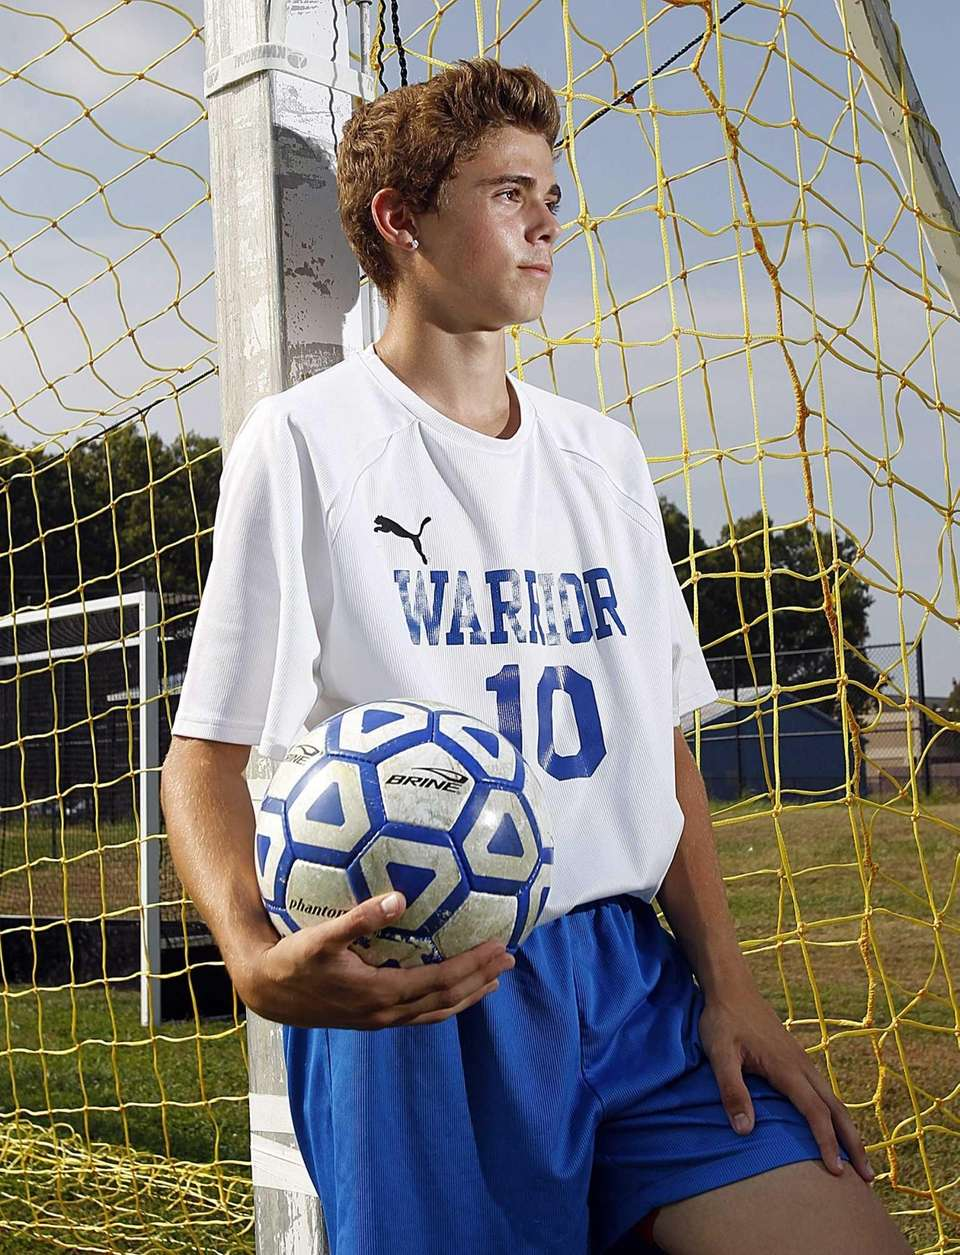 Comsewogue varsity soccer player James Thristino poses for